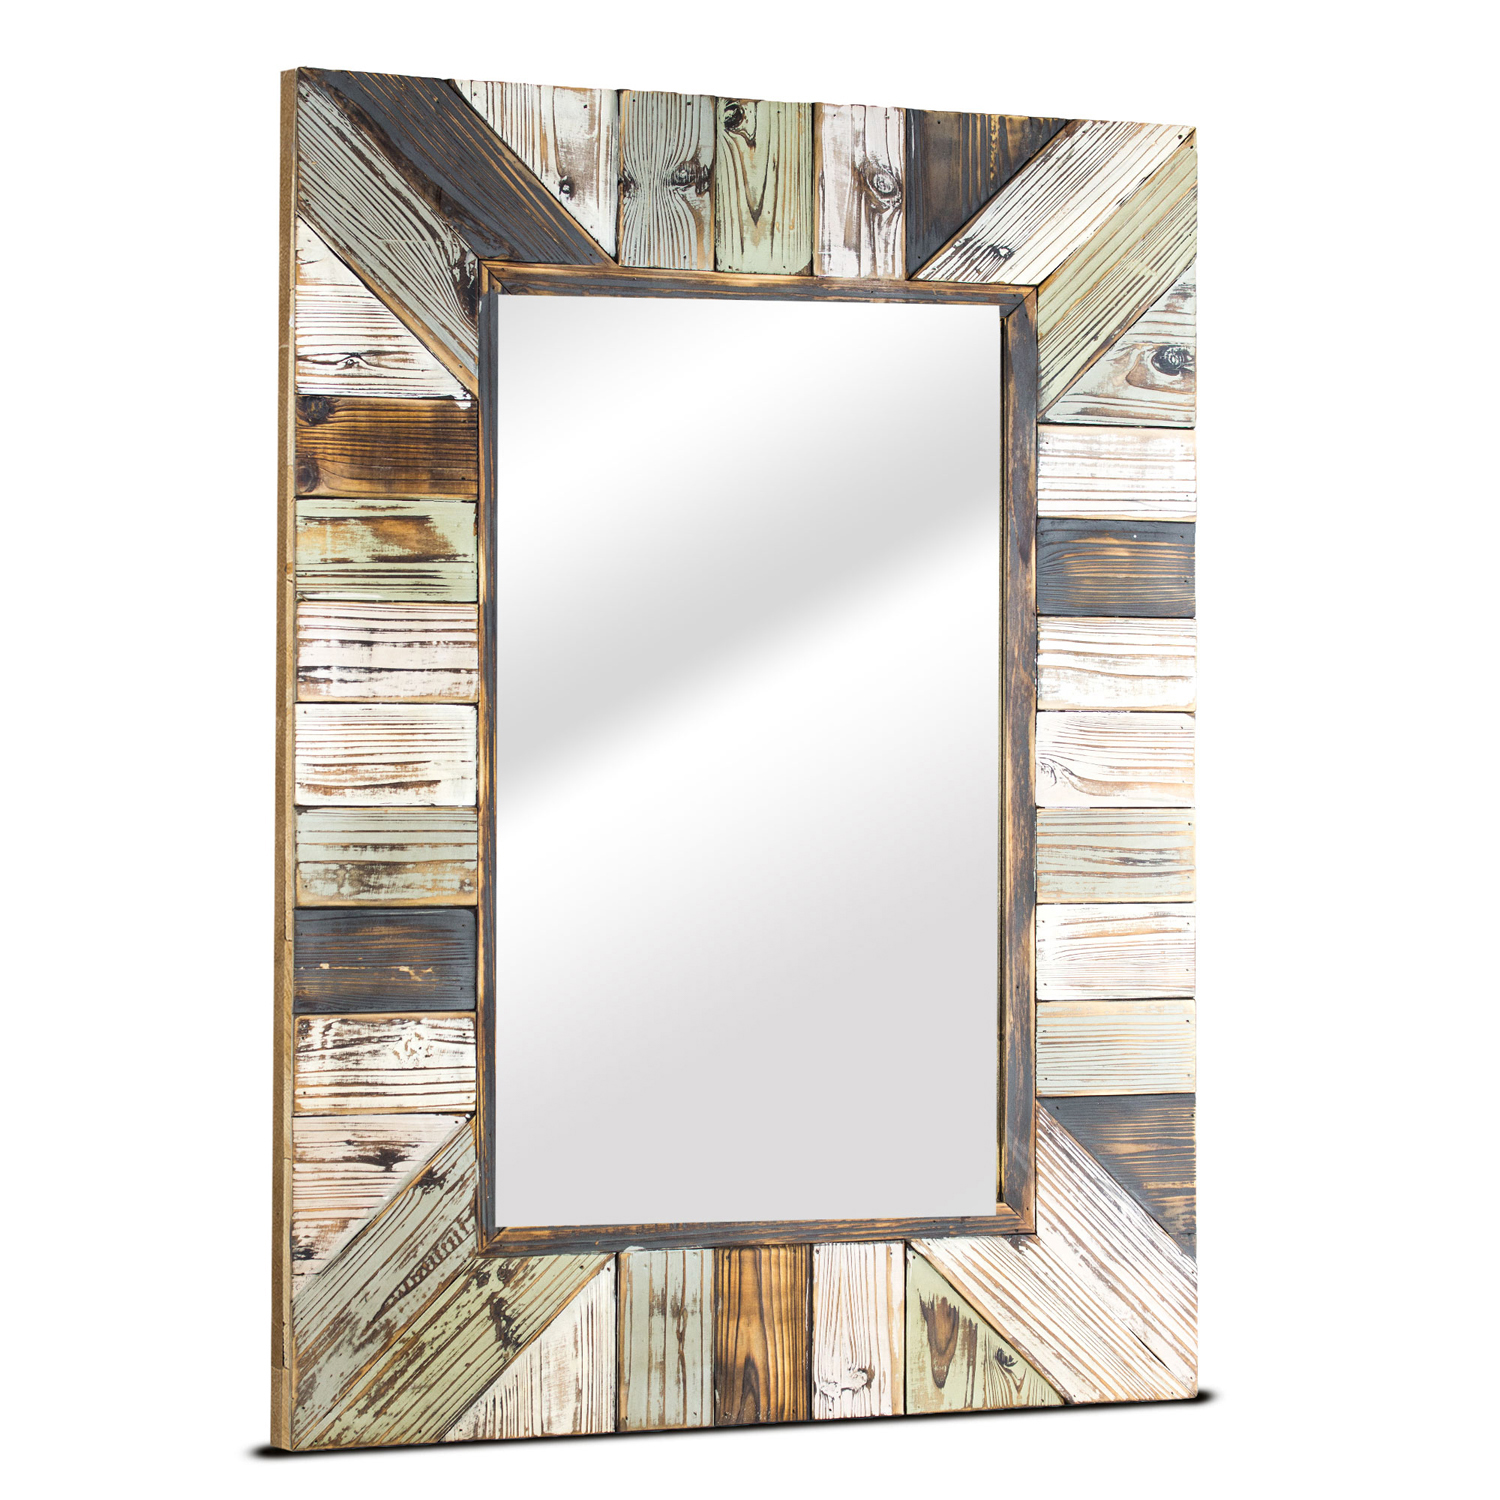 Farmhouse Rustic Planked Wood Mirror